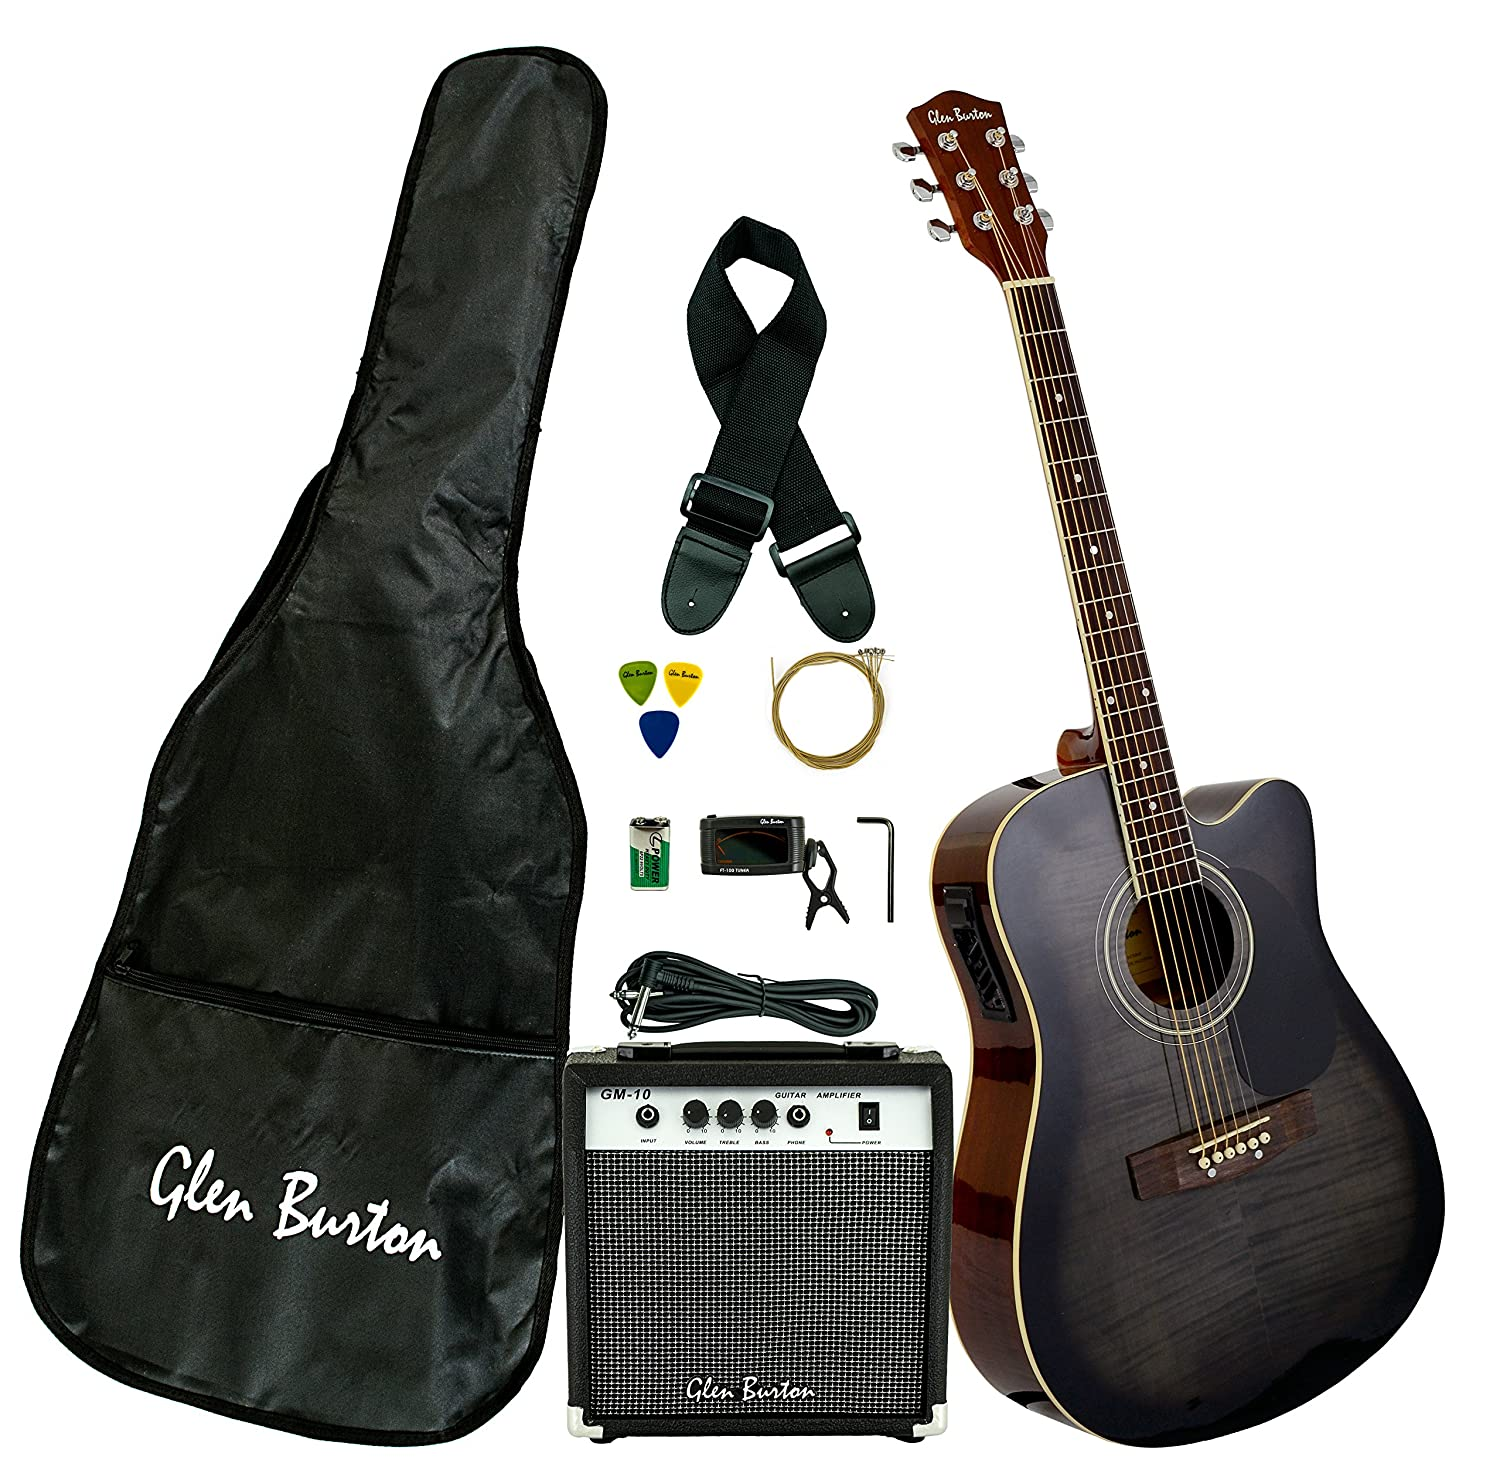 acoustic electric cutaway guitar black amp strap pick cord new ebay. Black Bedroom Furniture Sets. Home Design Ideas